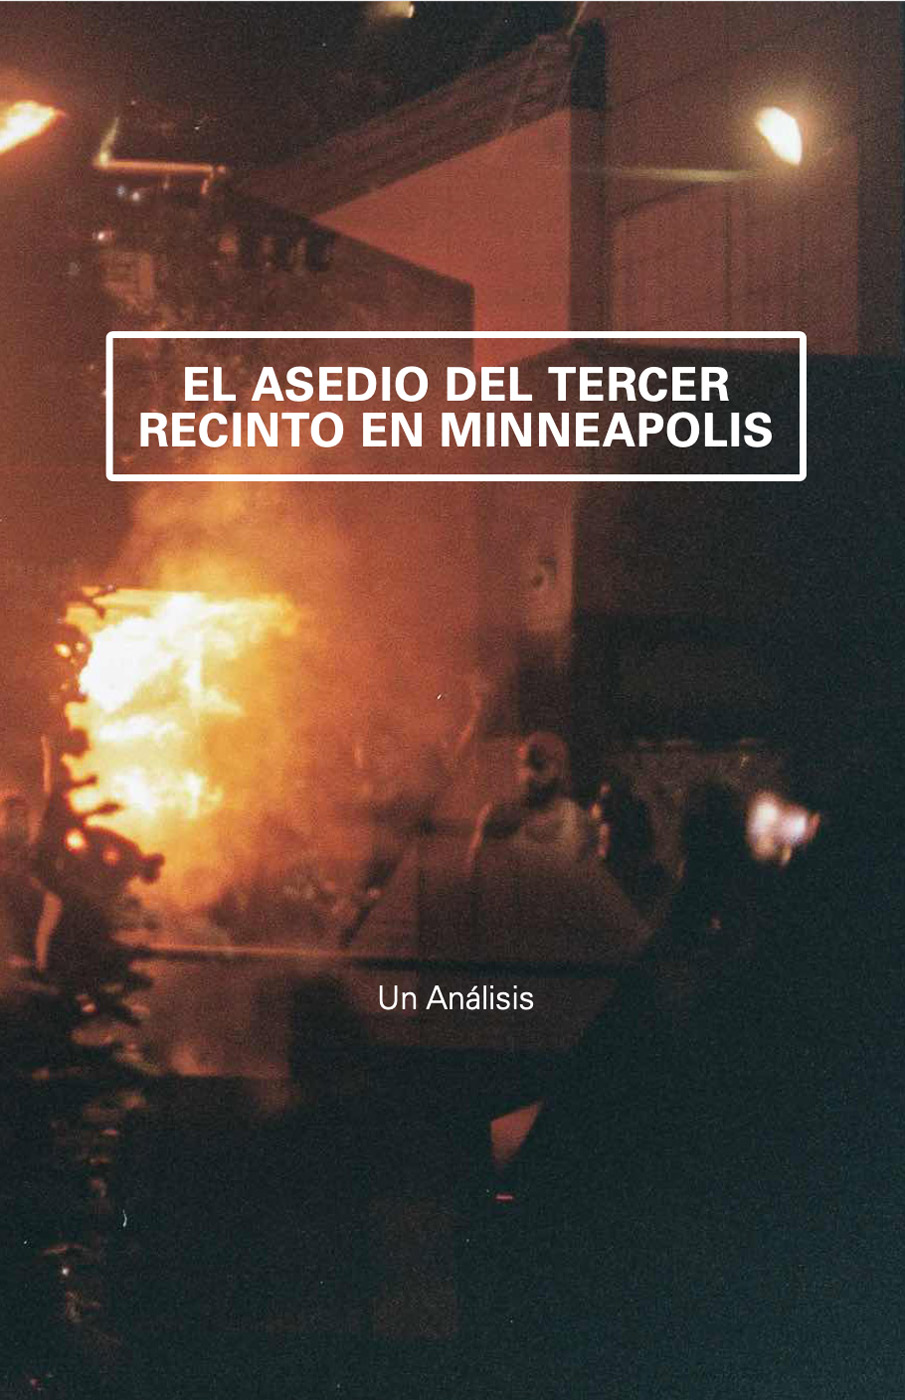 Photo of 'El asedio del Tercer Recinto en Minneapolis' front cover